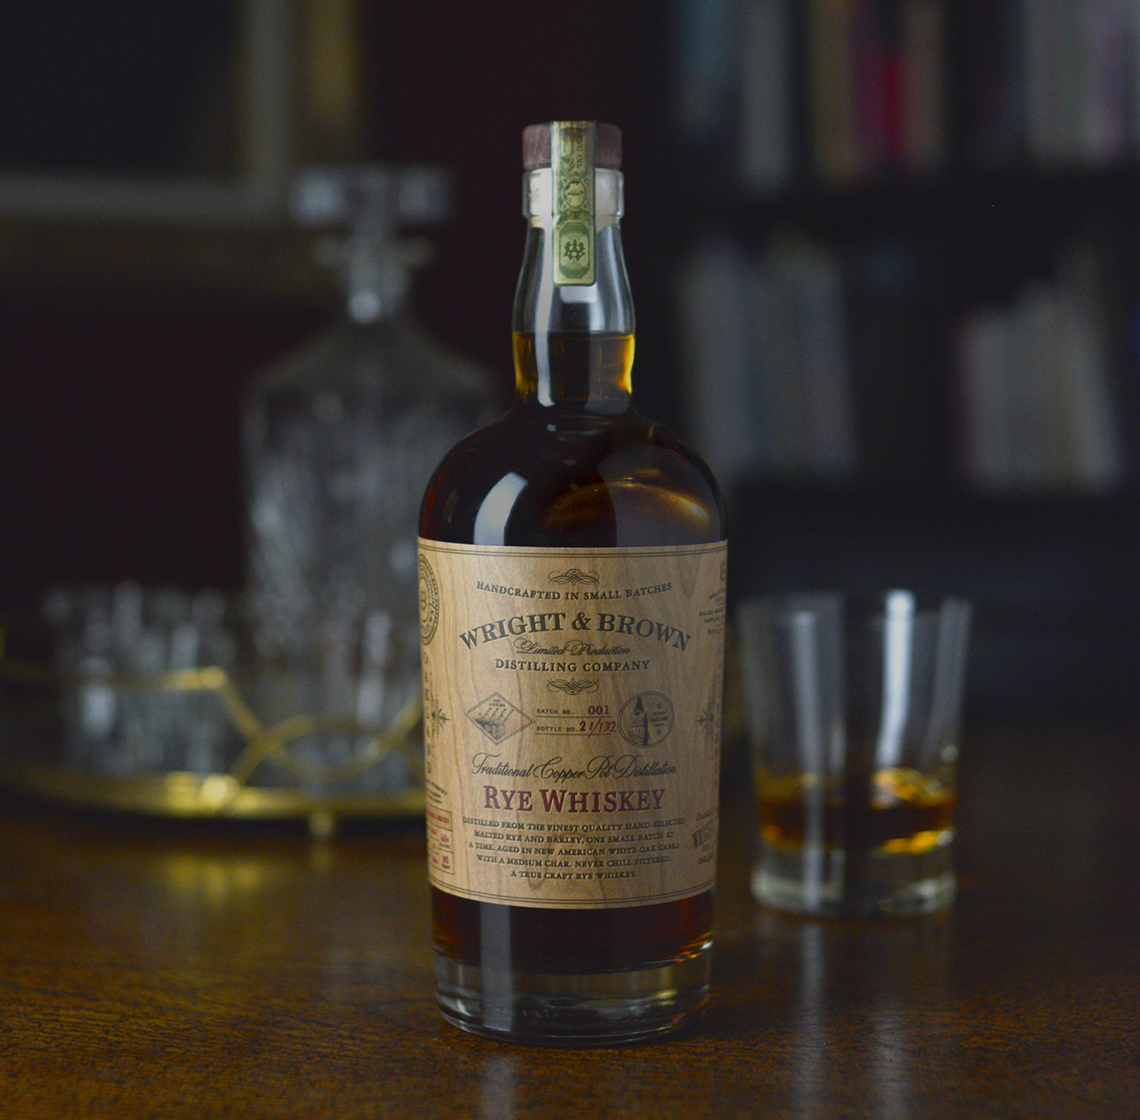 Auston Design Group - Wright & Brown Distilling Co. - Rye